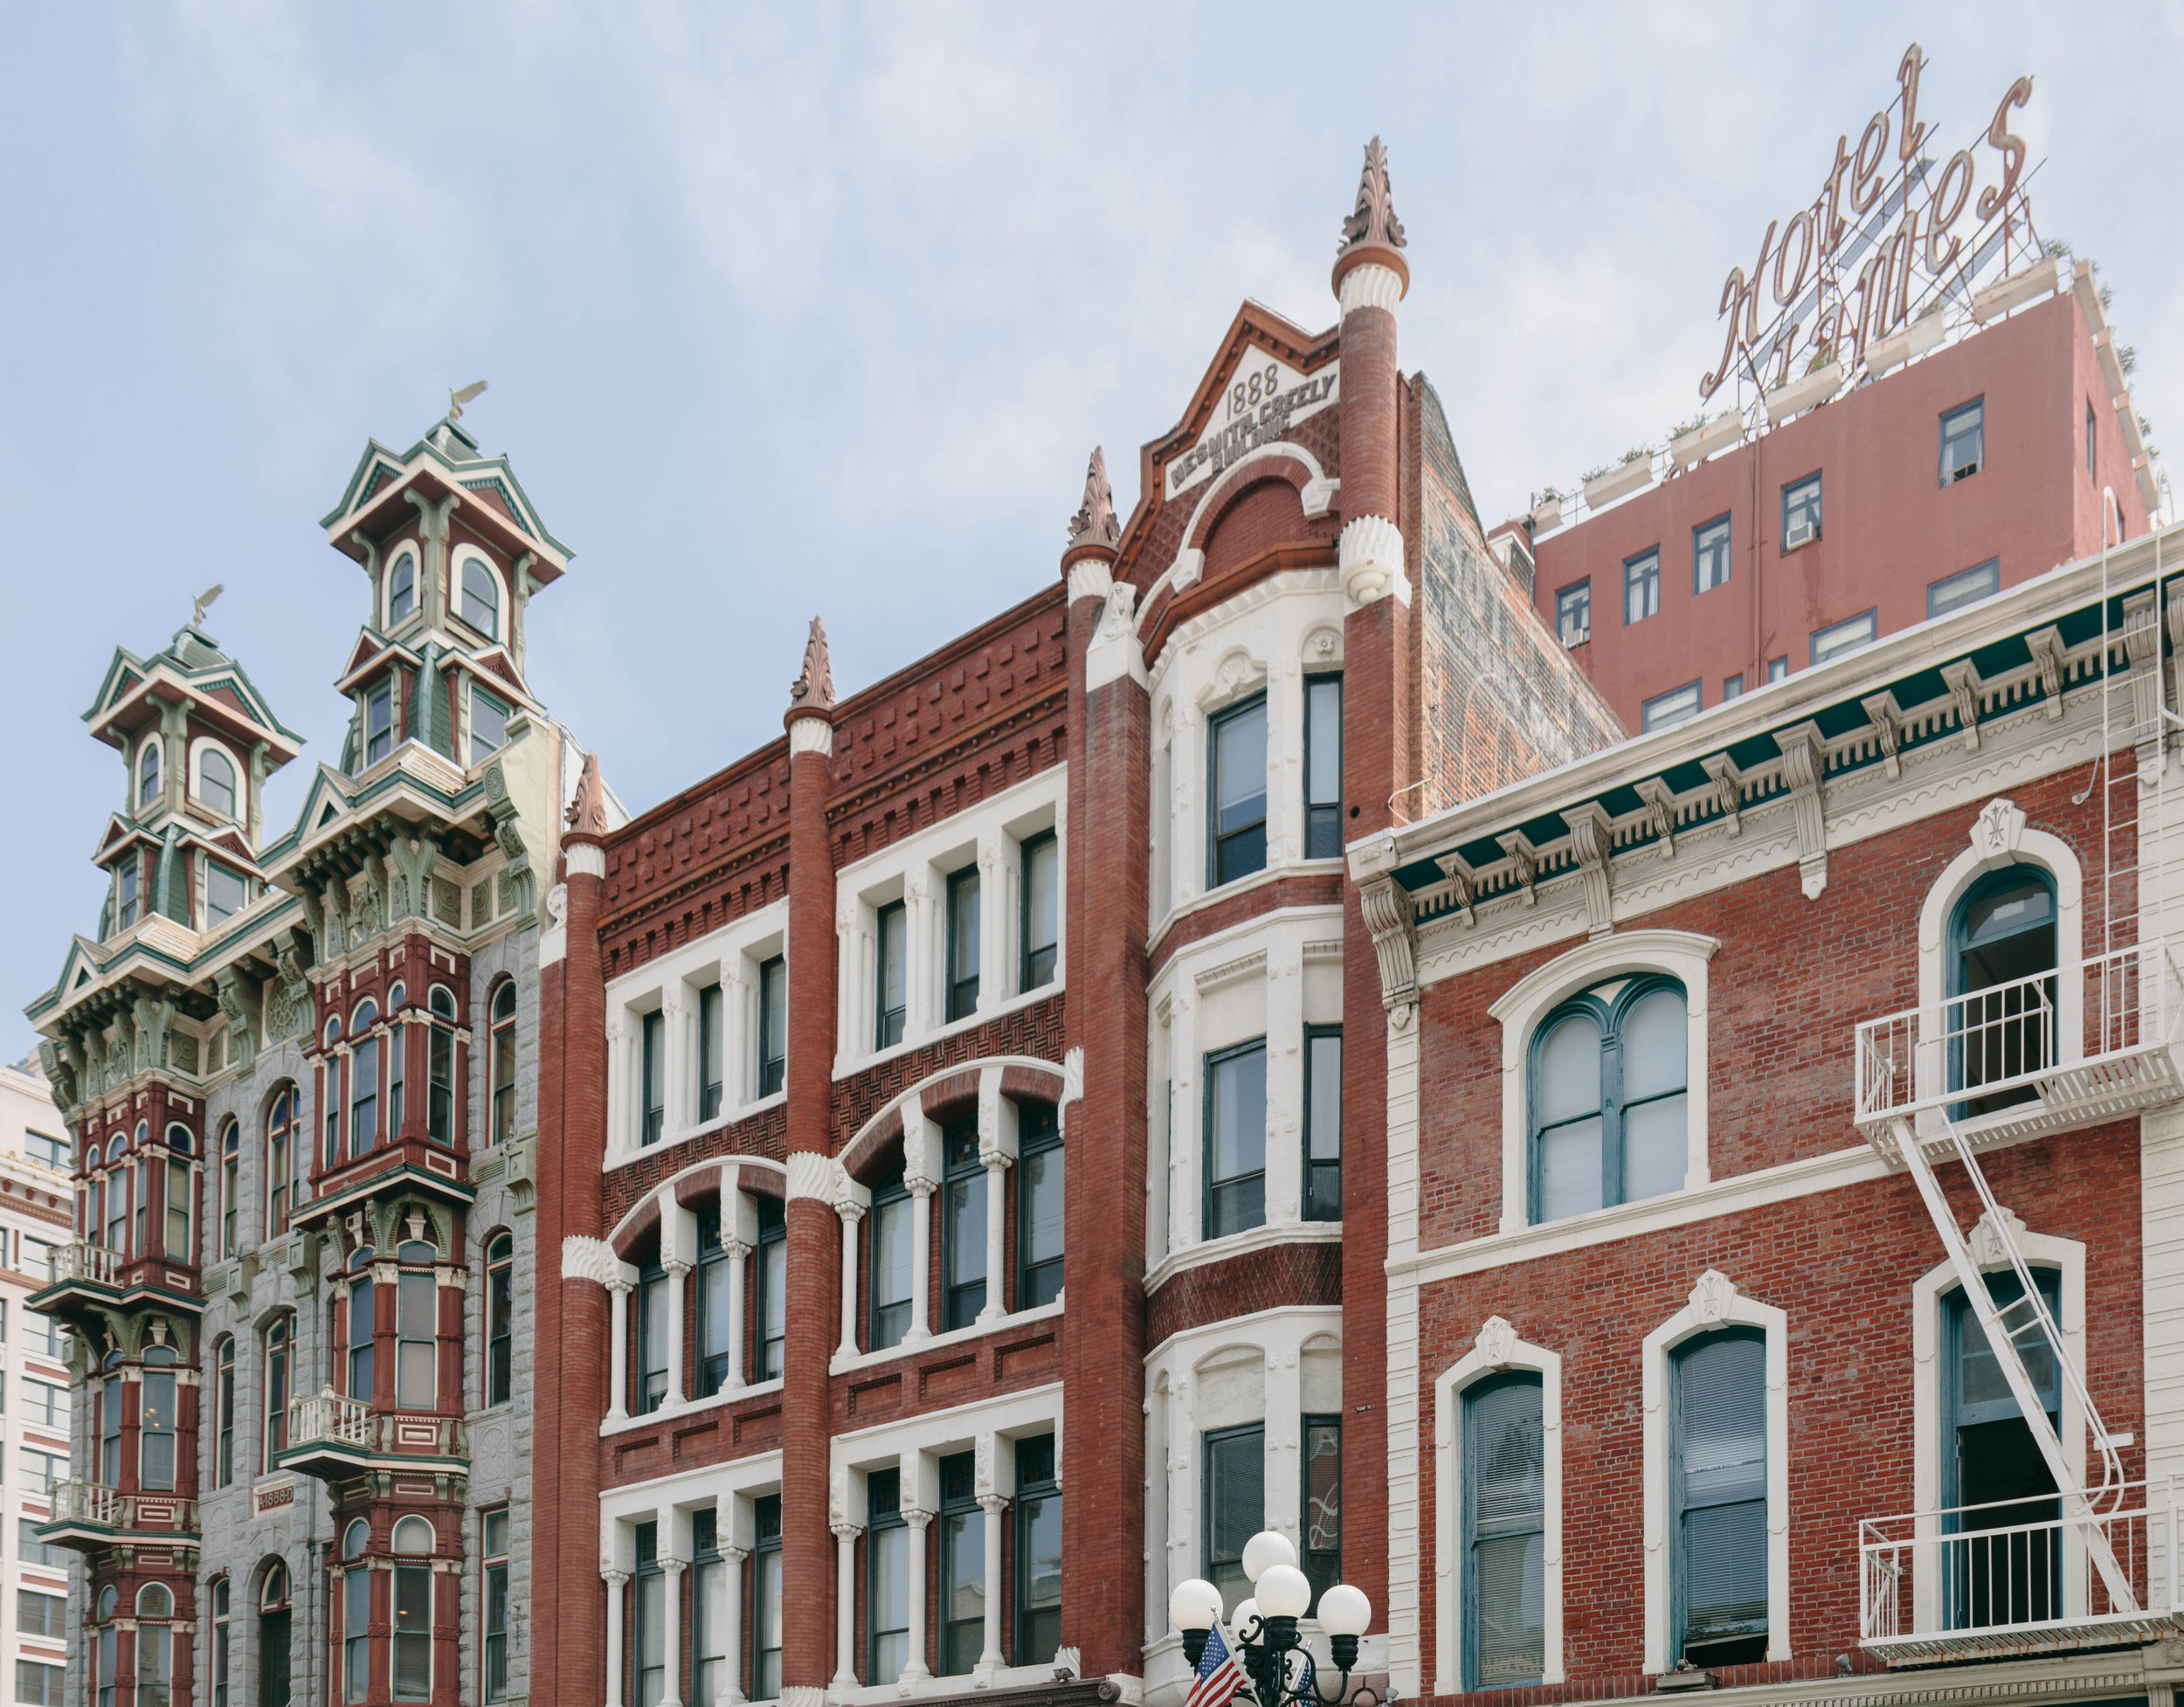 Left: Louis Bank of Commerce in the Baroque Revival Style (1888), which once housed an oyster bar frequented by Wyatt Earp.Right: NeSmith-Greeley Building in the Romanesque Revival Style (1888). The sign for the historic Hotel St. James (1913) can be seen in the background.